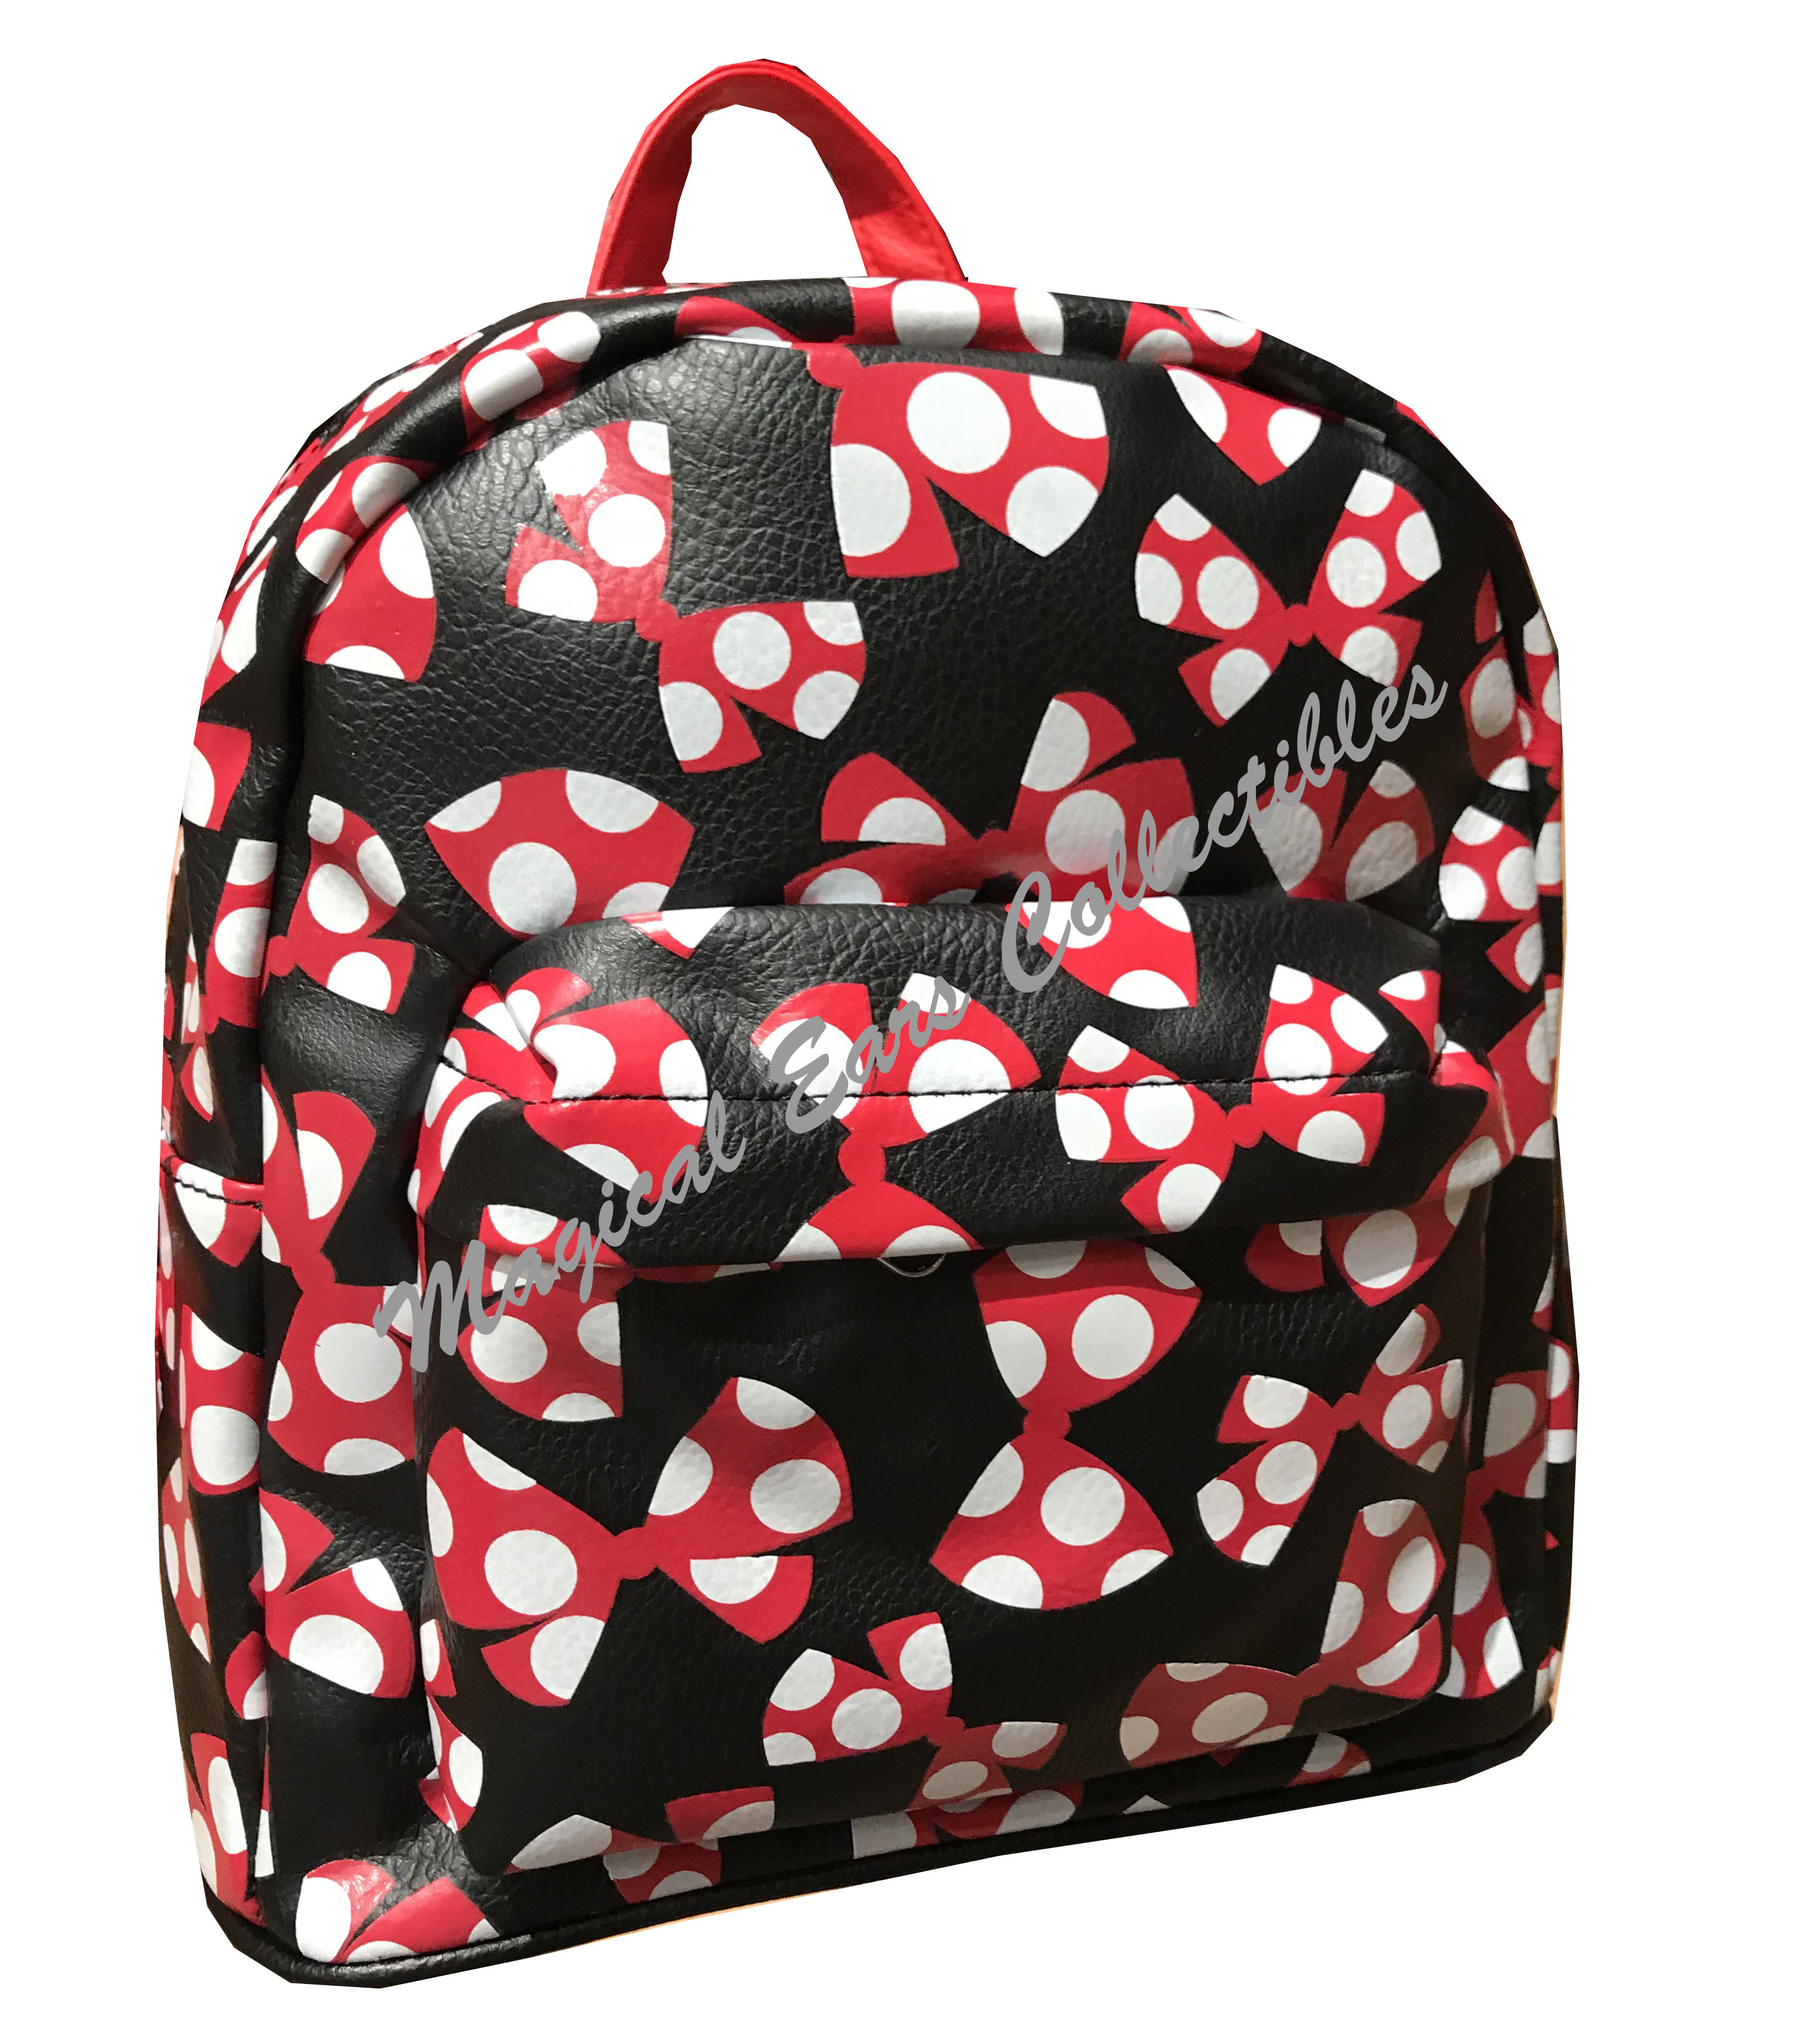 2a458d28cf9 Add to My Lists. Disney Backpack Bag - Minnie Mouse Bows All Over - Mini